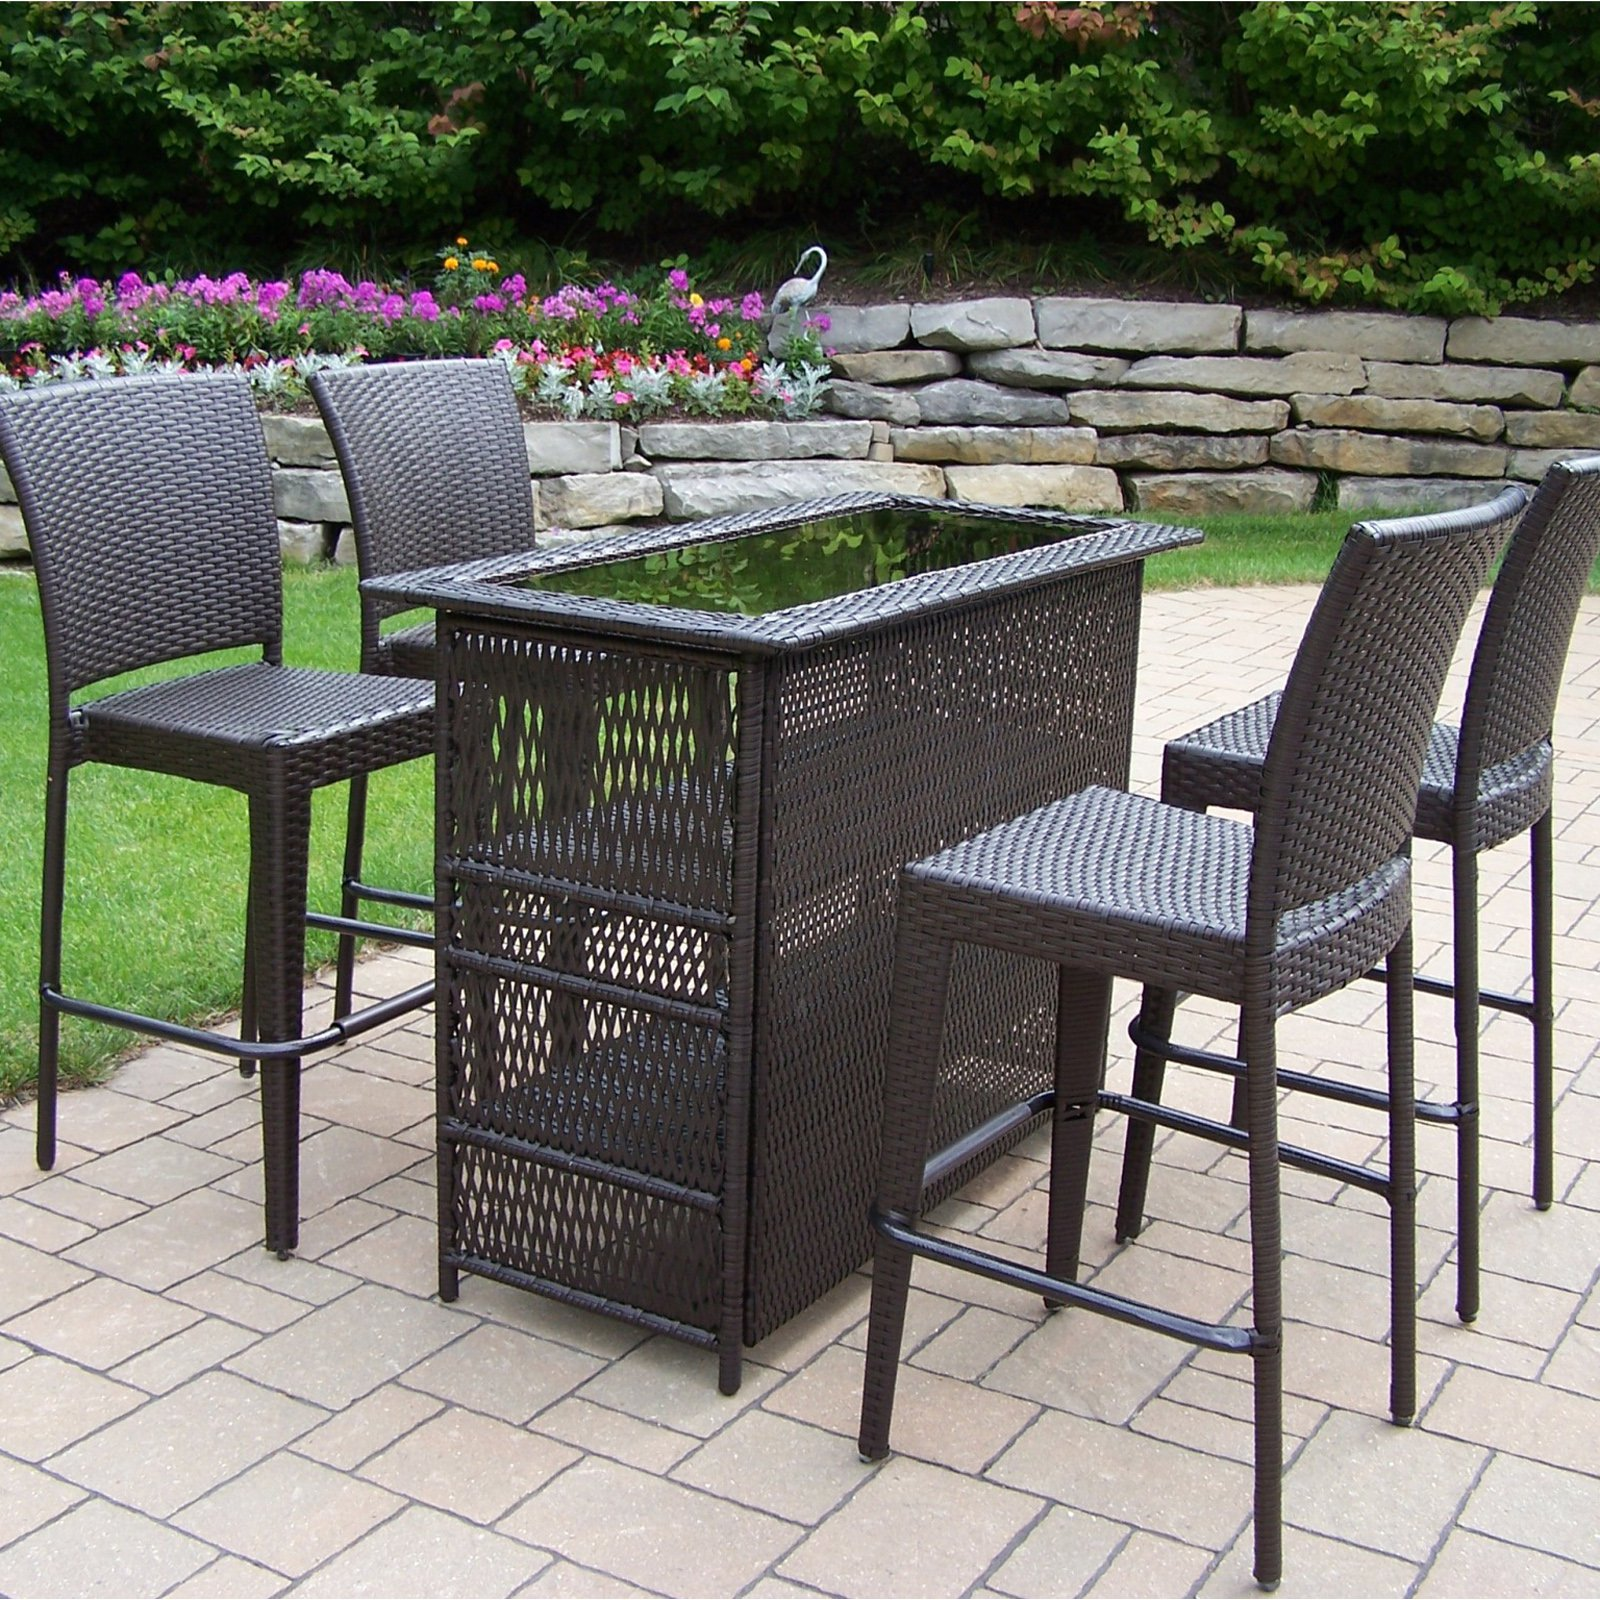 Outdoor Oakland Living All Weather Wicker Patio Bar Set